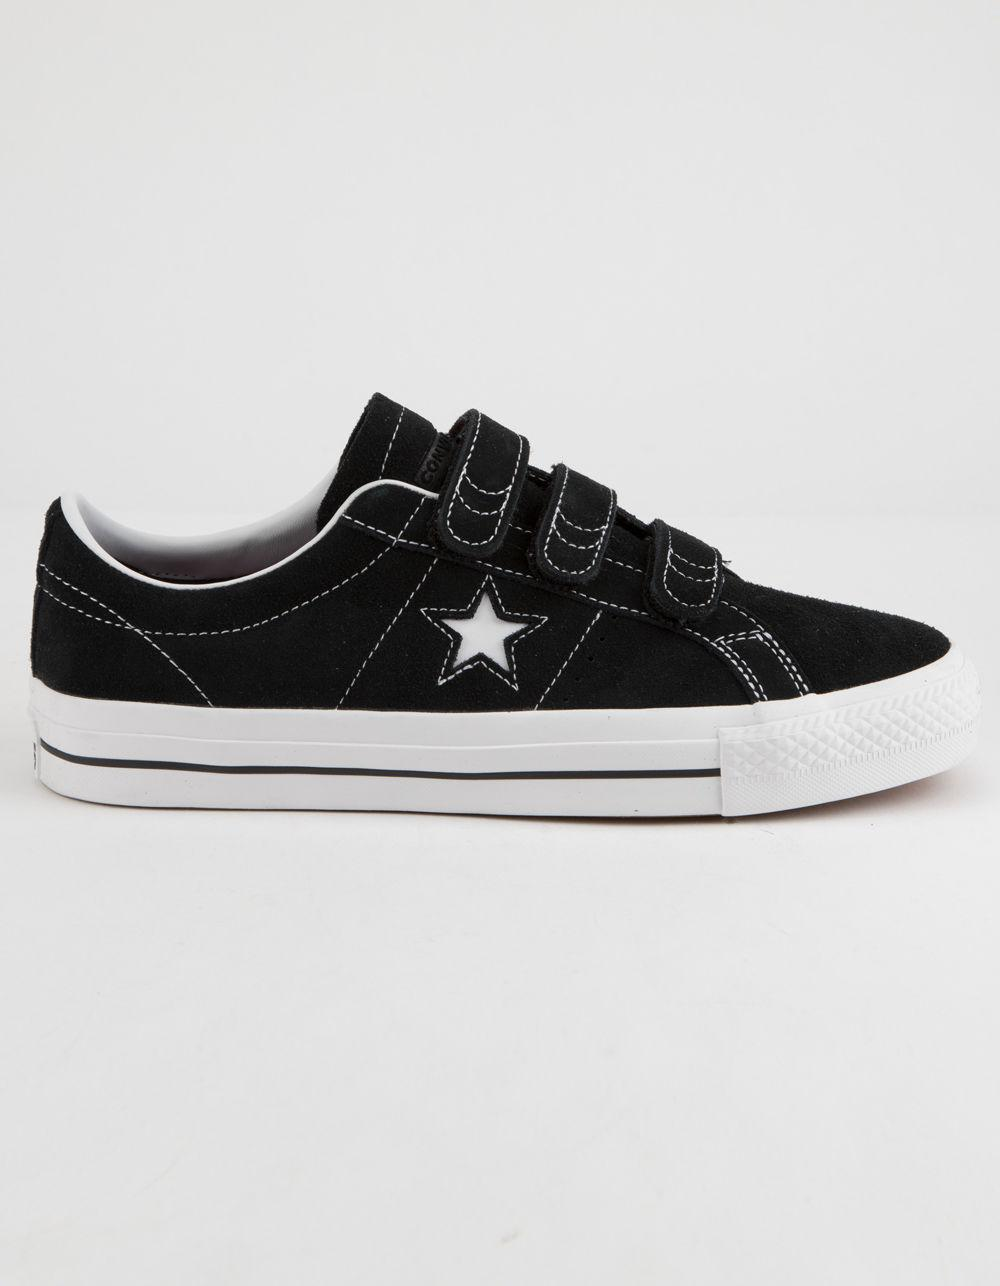 e838c1879a9 Lyst - Converse One Star Pro 3v Ox Black   White Shoes in Black for Men